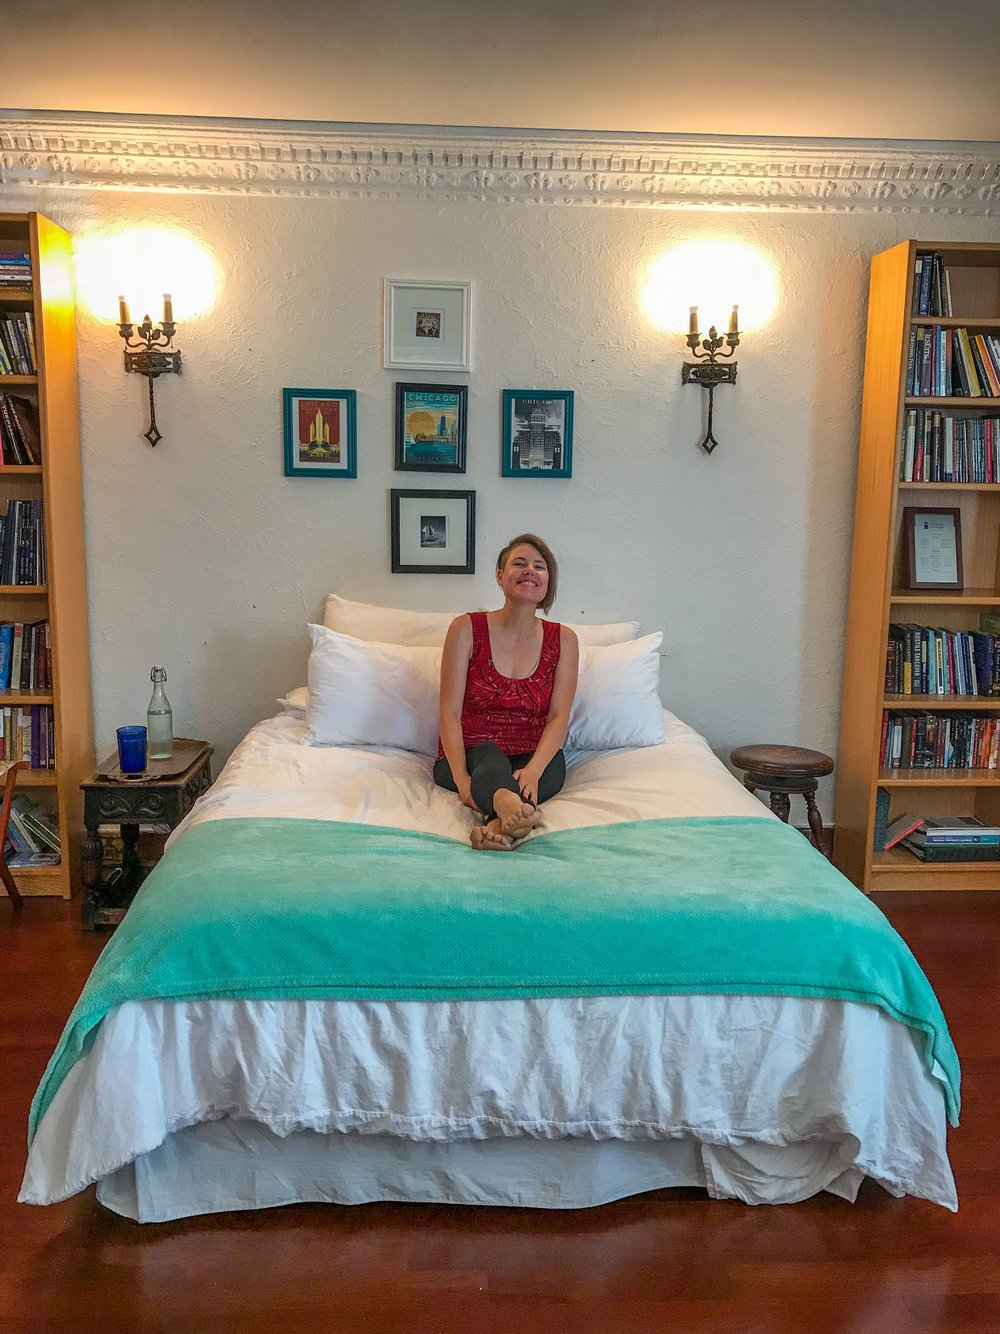 Me at my AirBnB in Chicago - use my discount code to save $40!